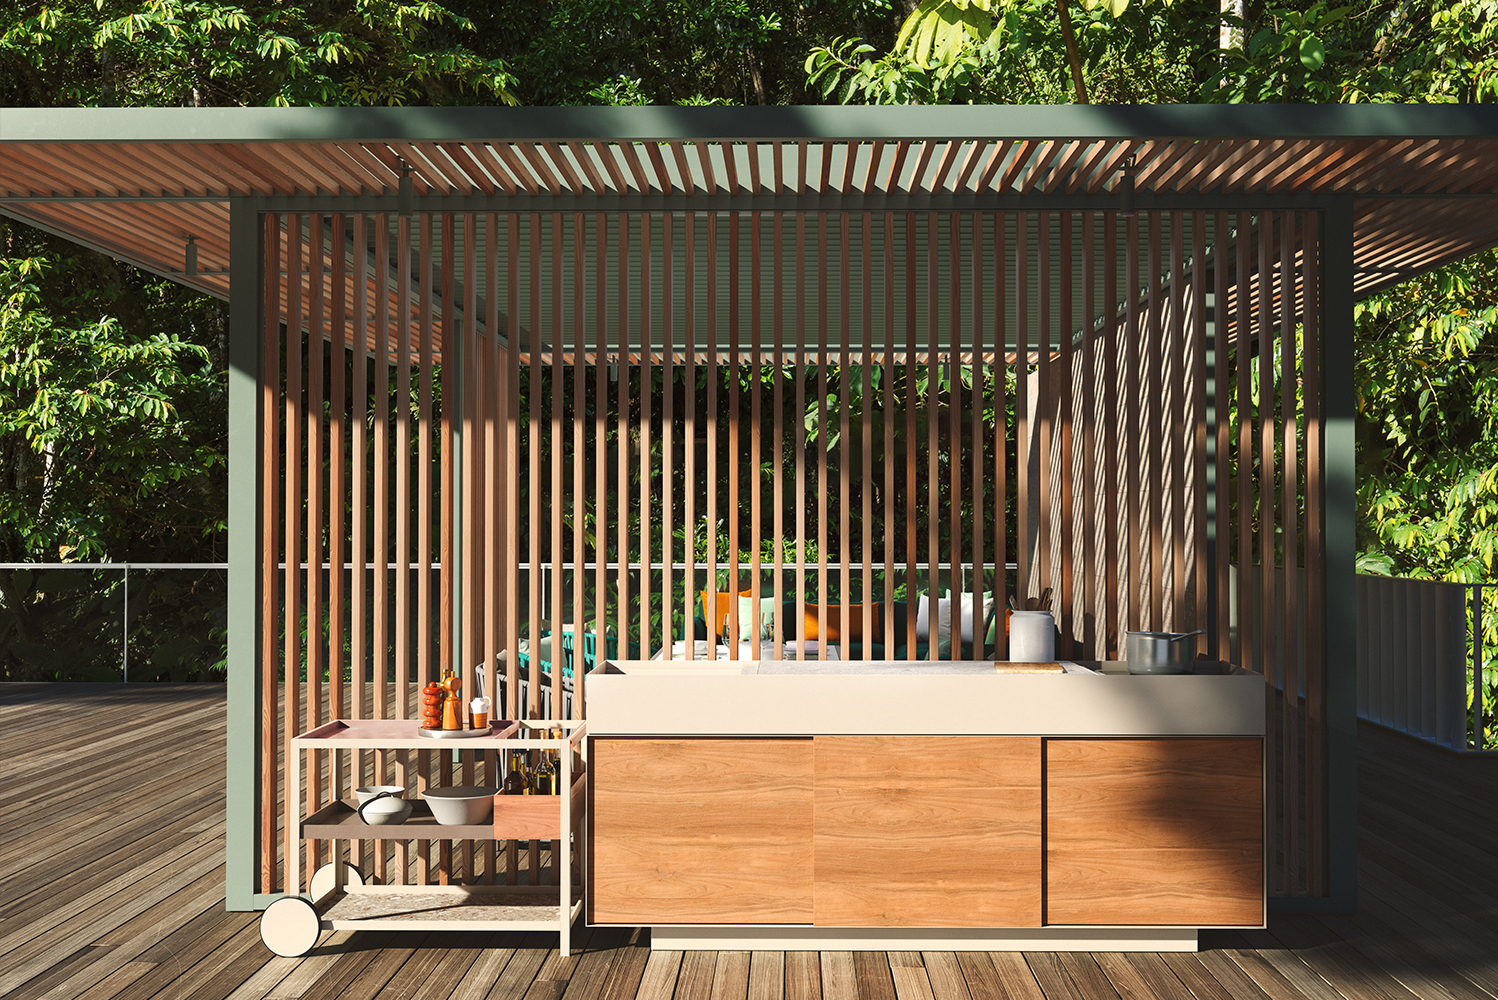 The pavilion has metal covering that also provides the structure for the kitchen, and different panels in a variety of finishes and materials can be attached to it.